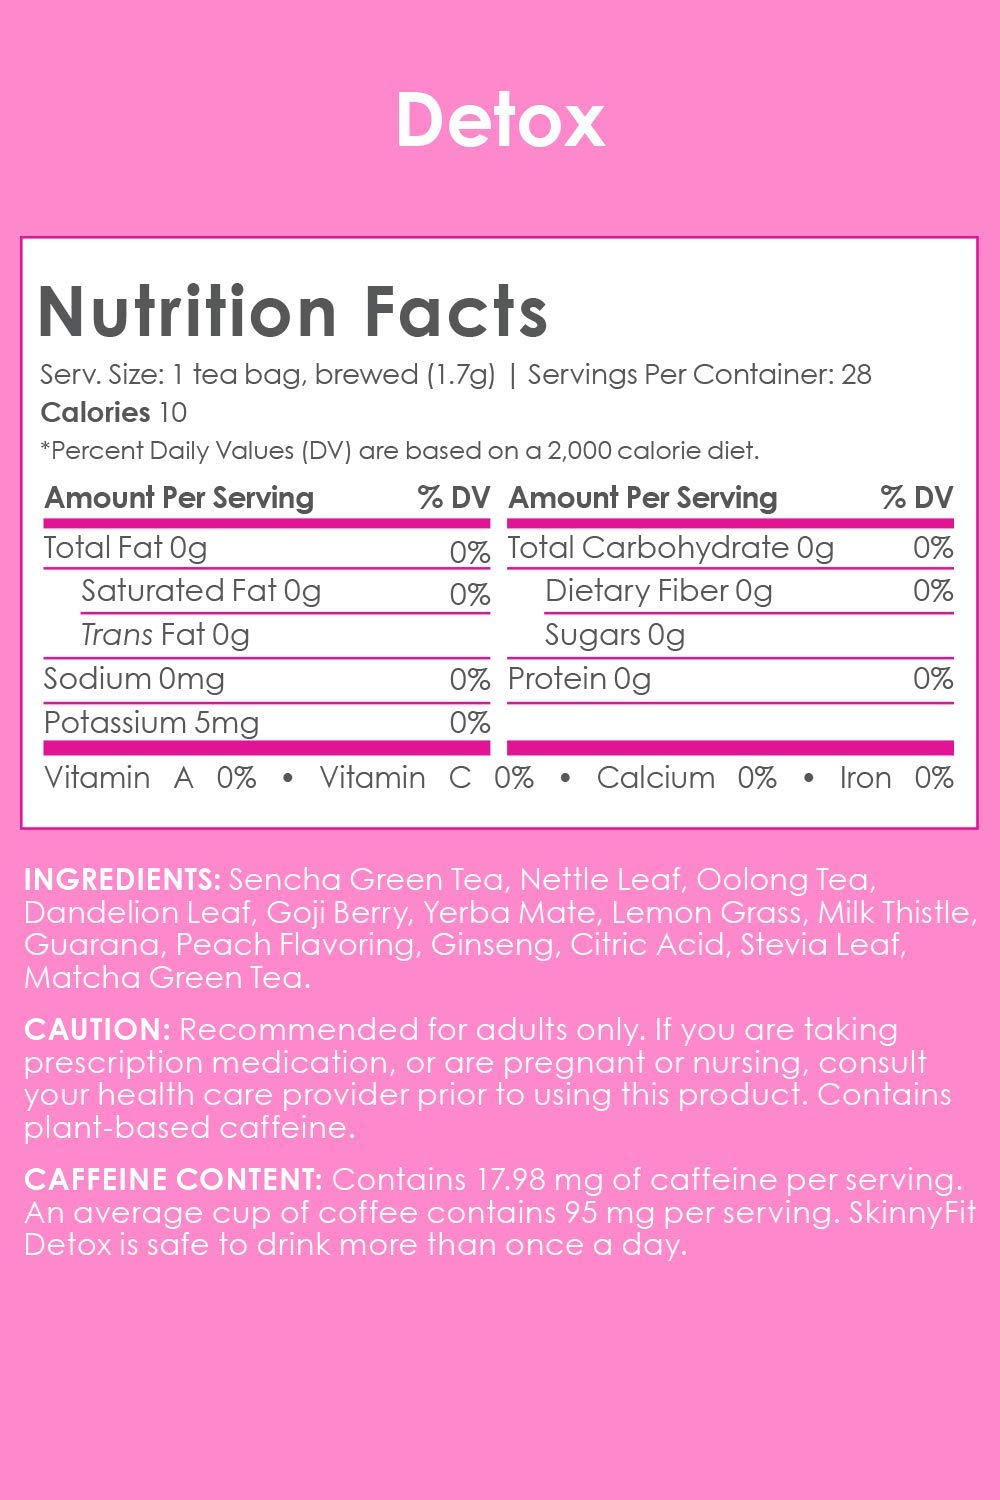 SkinnyFit Detox and ZzzTox 24/7 Bundle 56 Servings: Cleanse with All-Natural, Laxative-Free, Green Tea Leaves, Chamomile and Lavender. Gluten-Free - Slimming Way to Release Toxins and Reduce Bloating by SkinnyFit (Image #5)